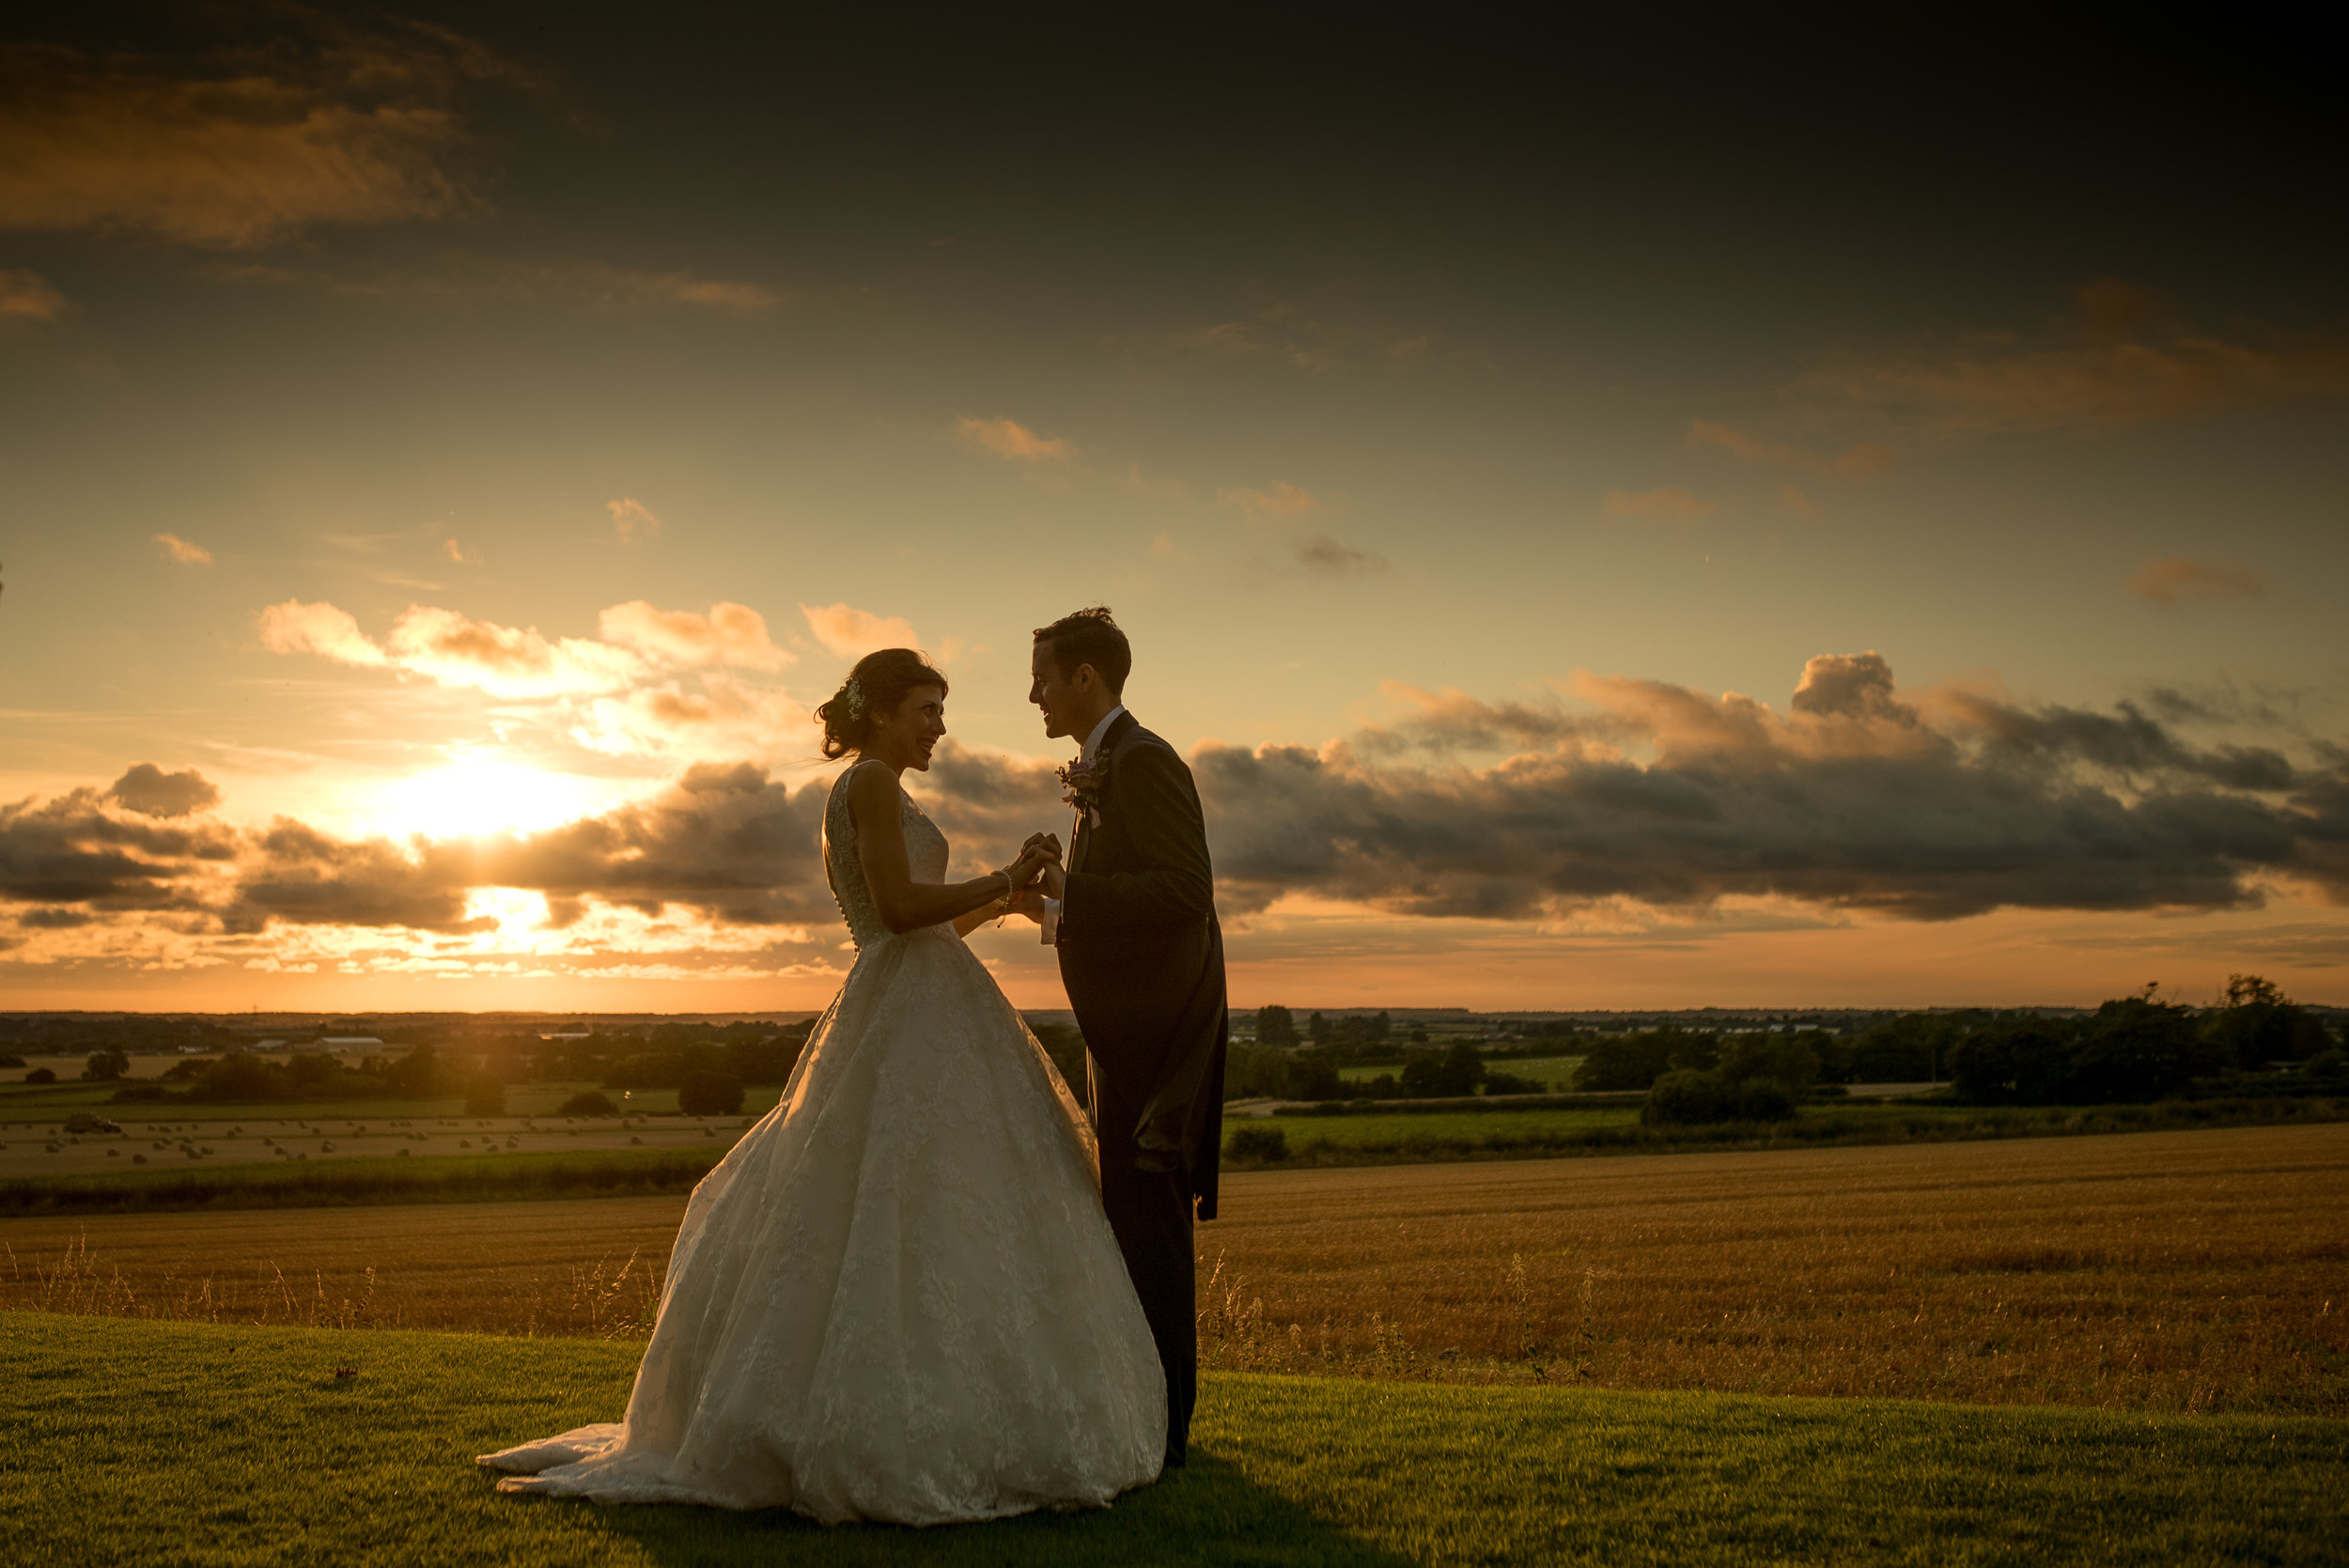 cheshire-wedding-photography-west-tower-sunset